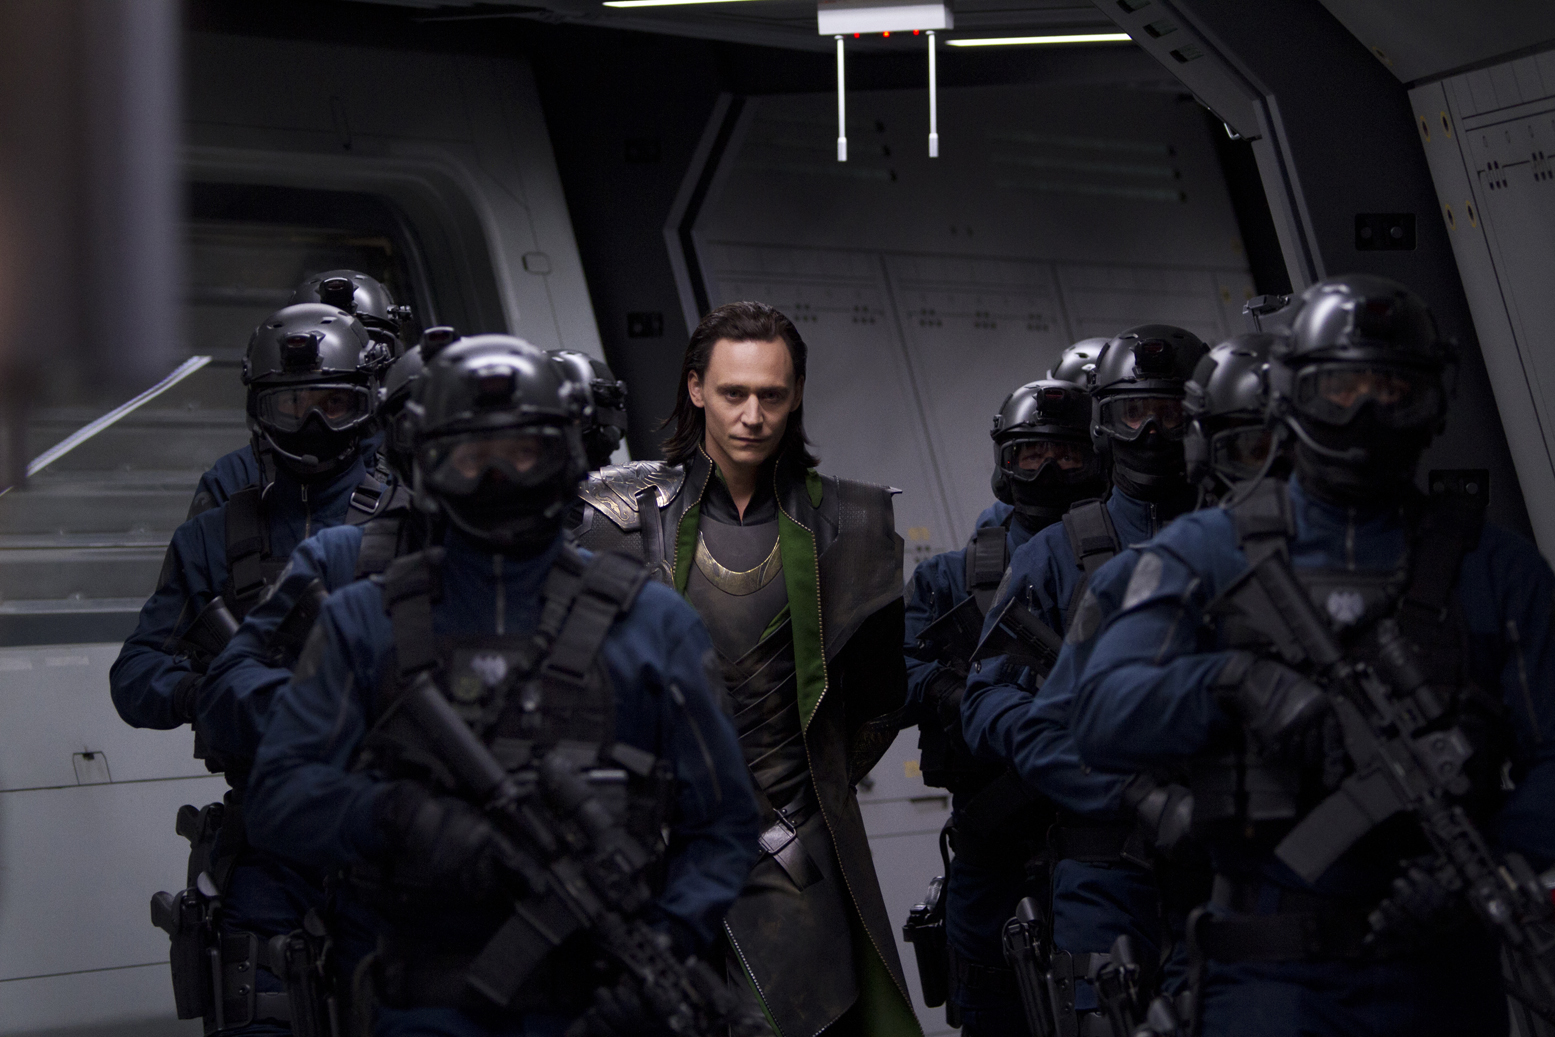 http://2.bp.blogspot.com/-BnokPAtVfVw/TopGqmpPEiI/AAAAAAAADj0/Ycm8CoduW1o/s1600/avengers-movie-image-tom-hiddleston-01.jpg